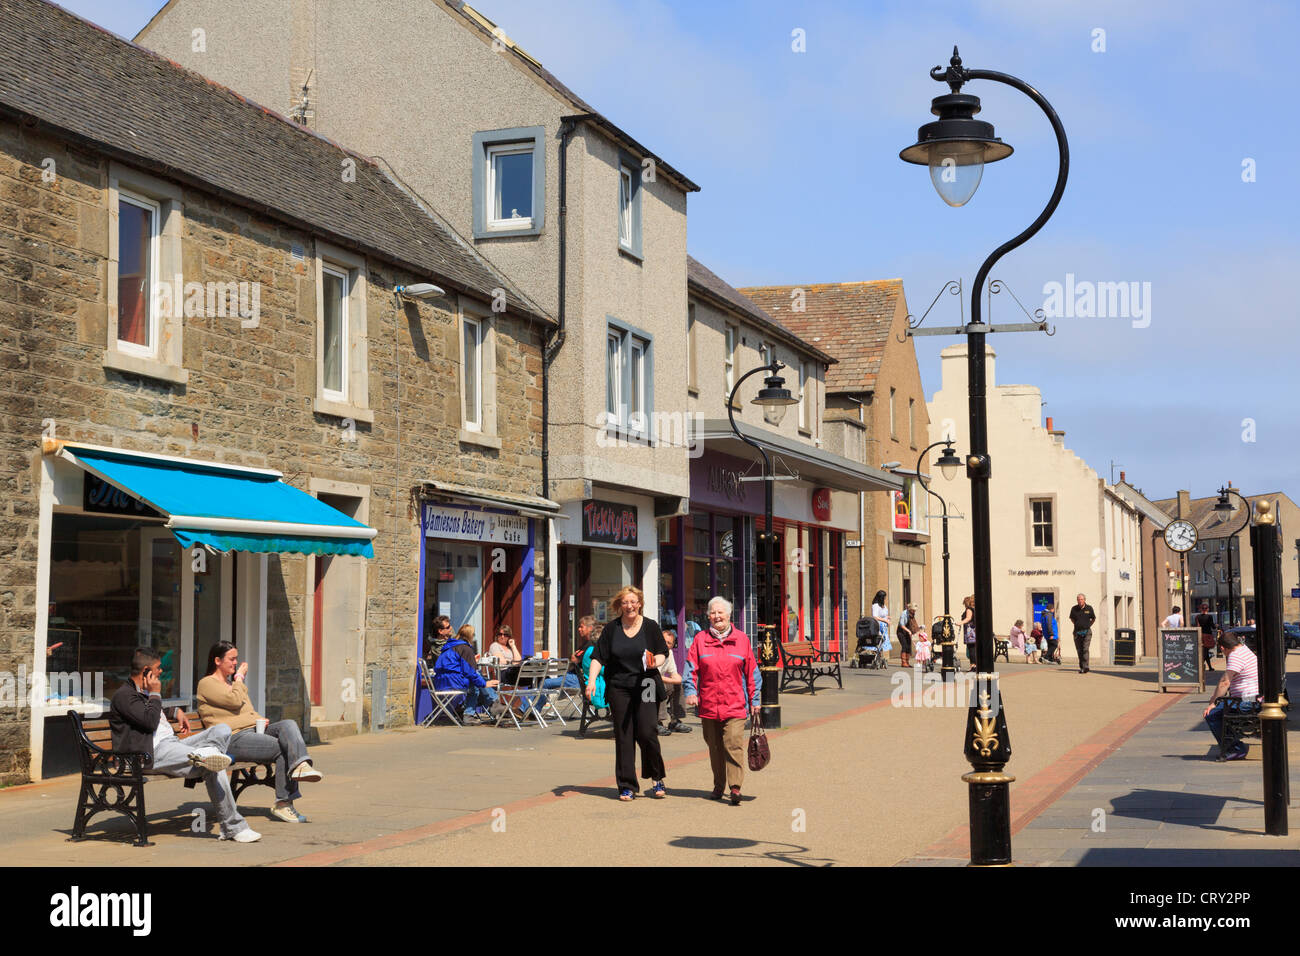 Street scene with small shops and people shopping in the town centre. High Street, Thurso, Caithness, Scotland, - Stock Image